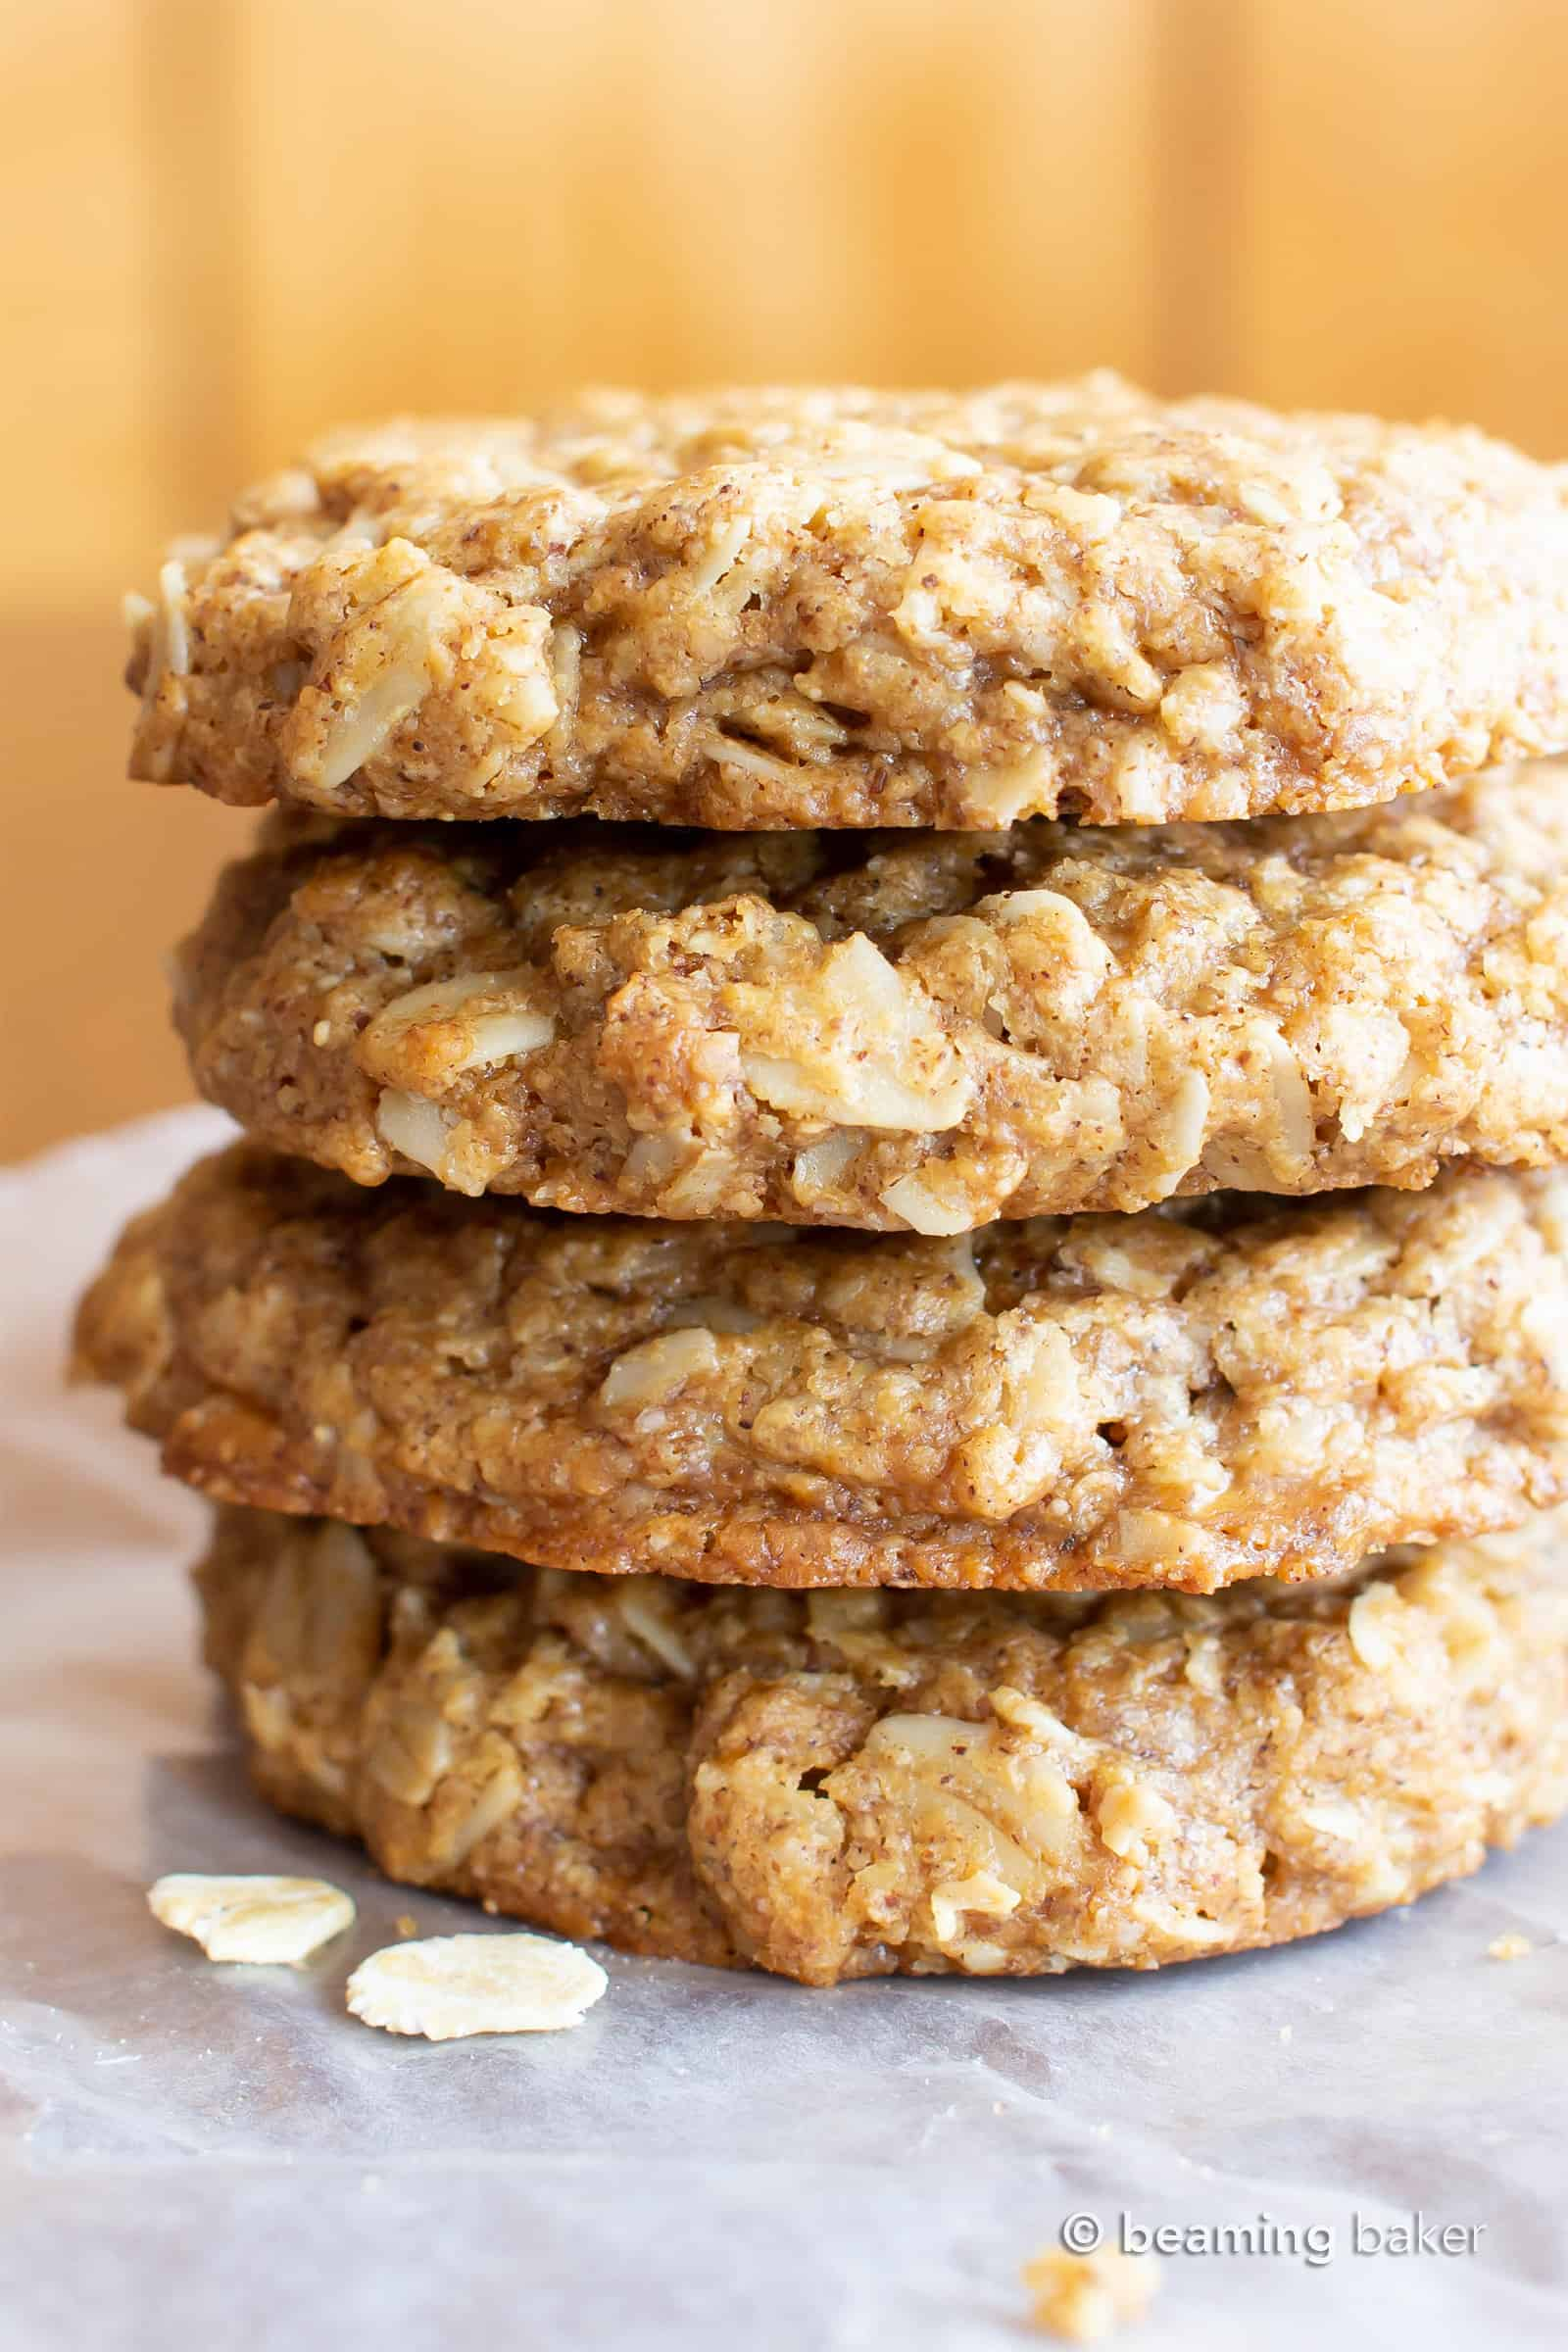 Easy Vegan Oatmeal Cookies (GF): a Simple recipe for the BEST Vegan Oatmeal Cookies! Chewy, moist centers with crispy, caramel-y edges & packed with comforting oatmeal. #OatmealCookies #Vegan #GlutenFree #Cookies   Recipe at BeamingBaker.com